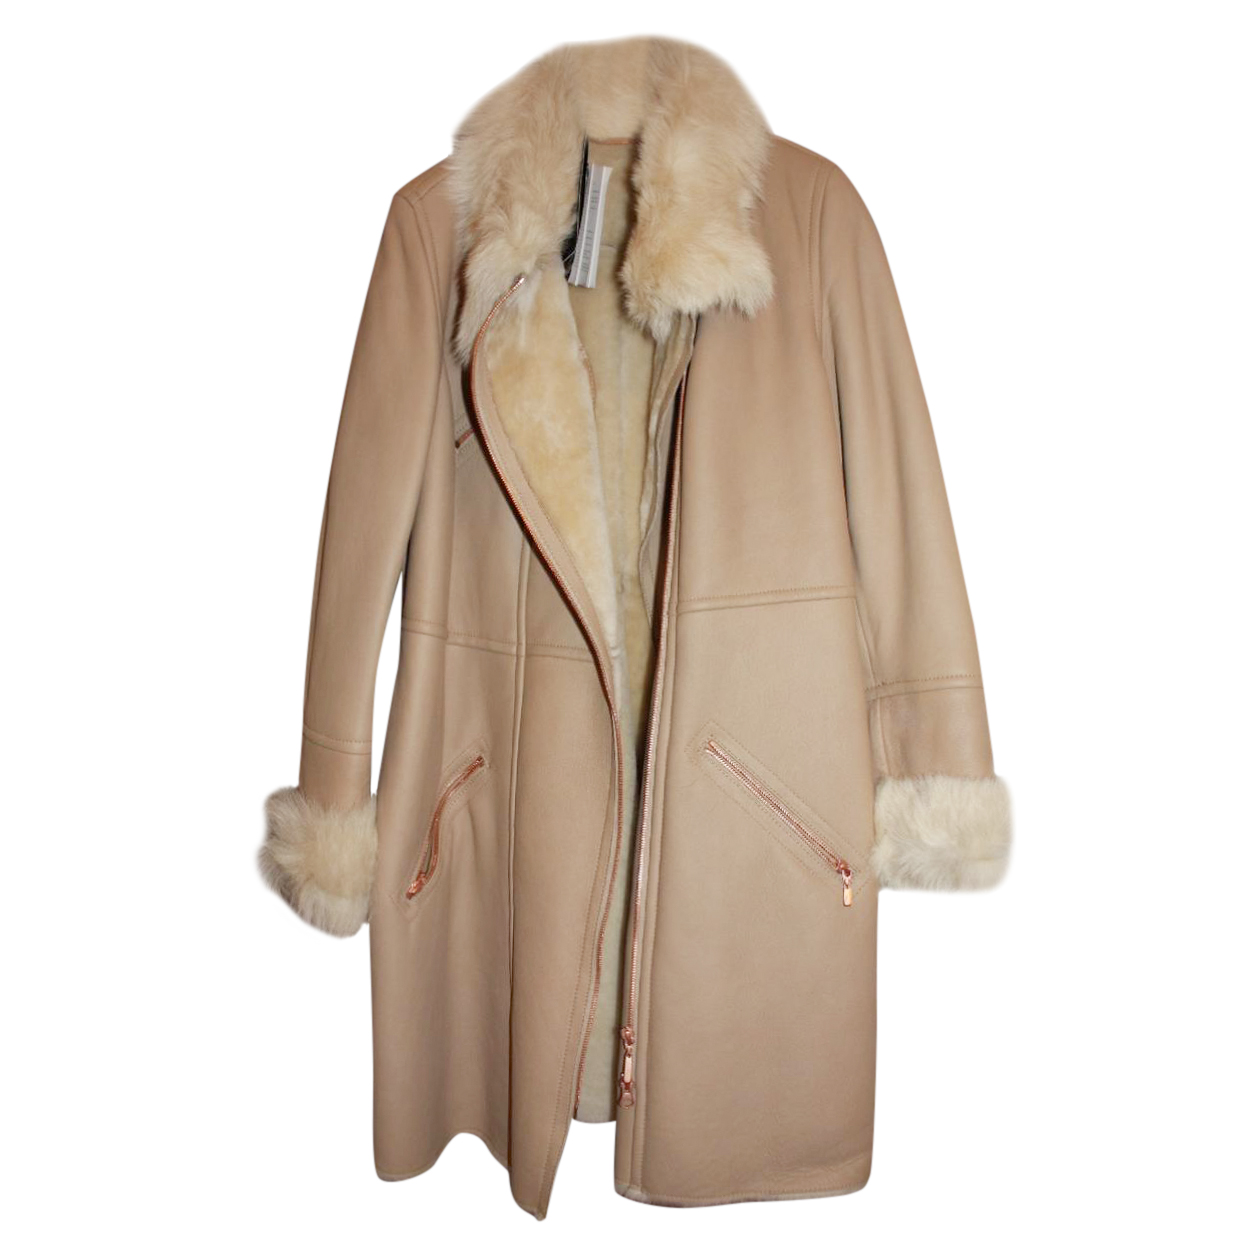 Escada leather shearling coat